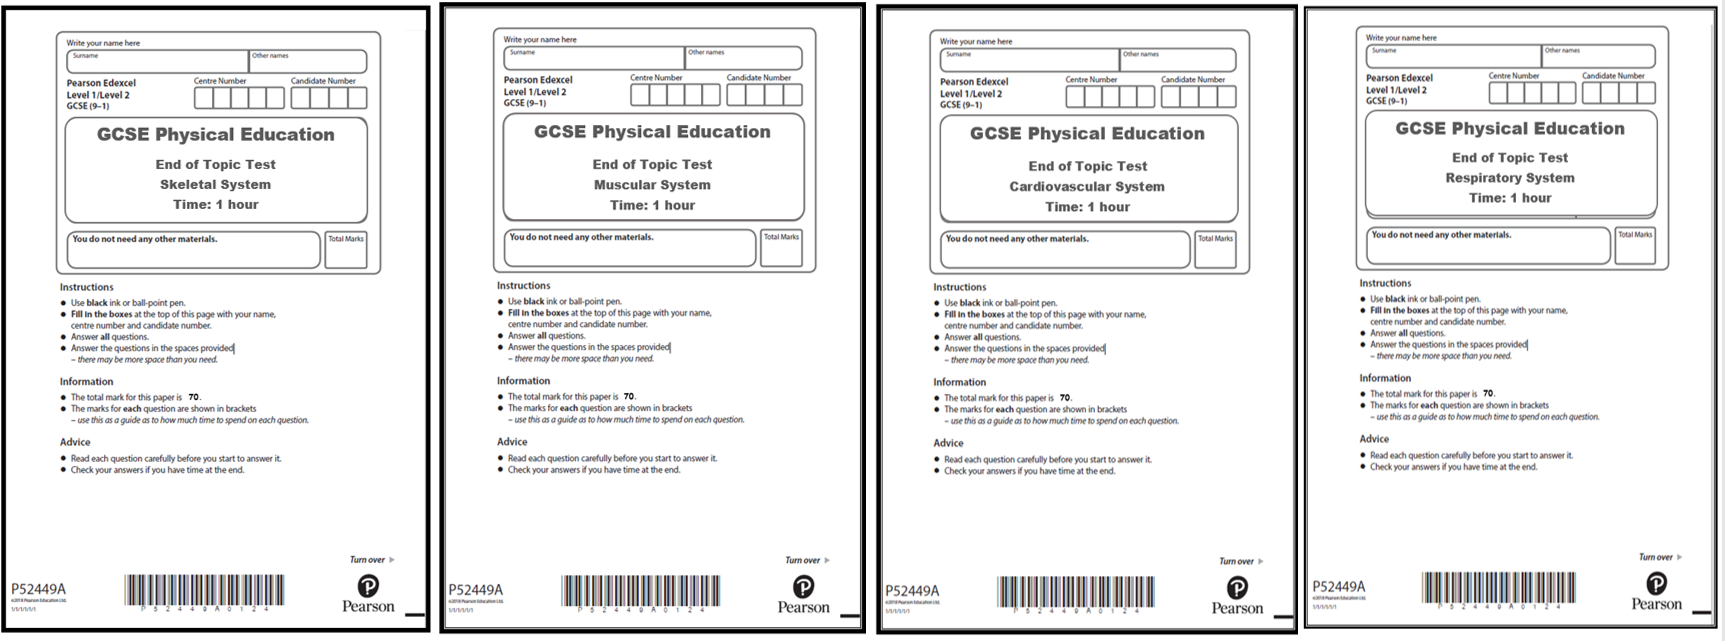 GCSE PE - Edexcel (9-1) - End of Topic Tests for Anatomy and Physiology